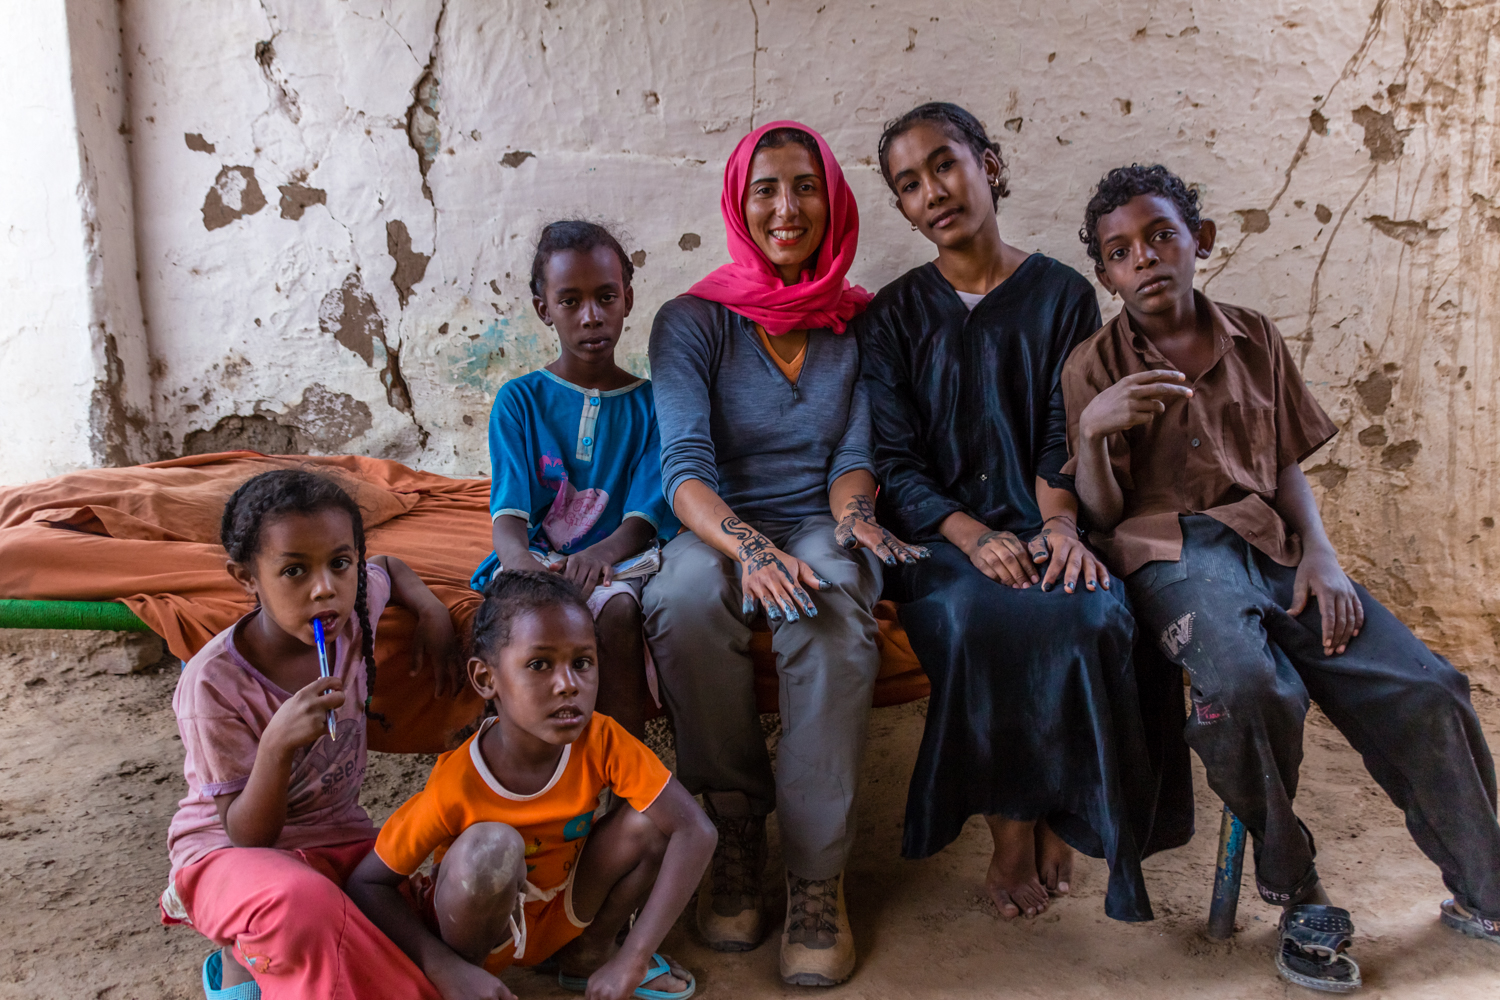 family in sudan